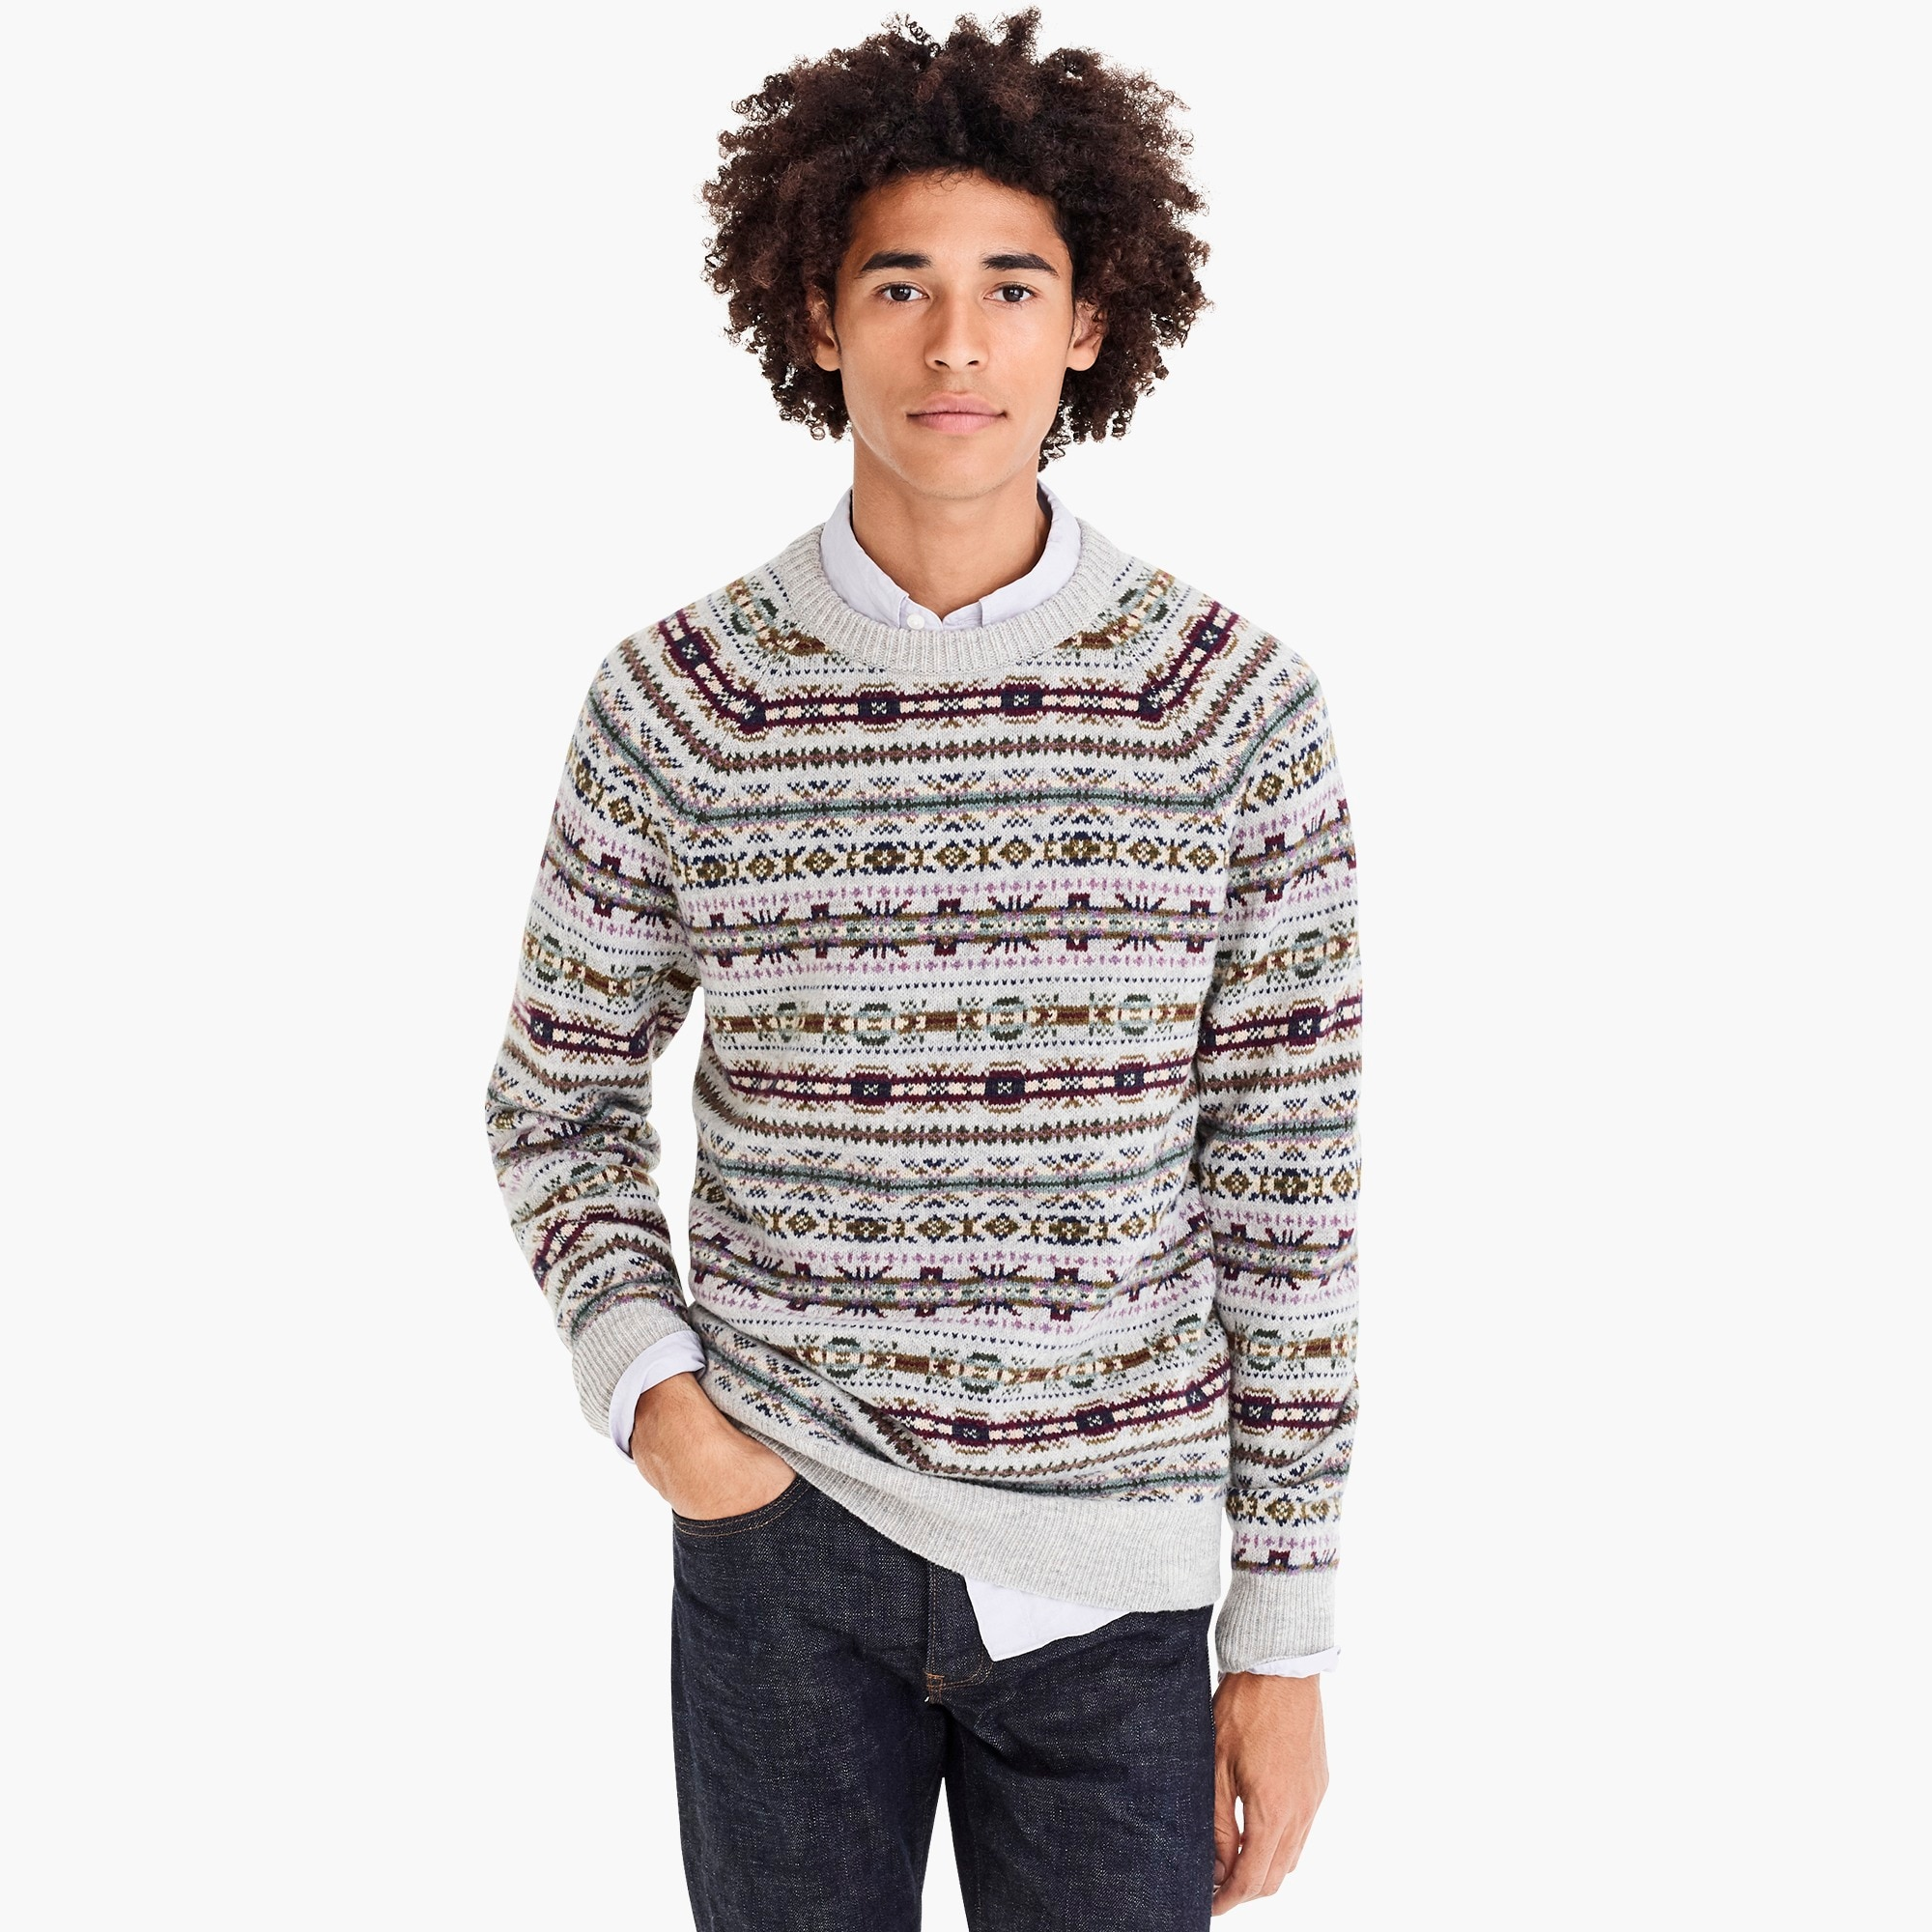 mens Lambswool crewneck sweater in Fair Isle